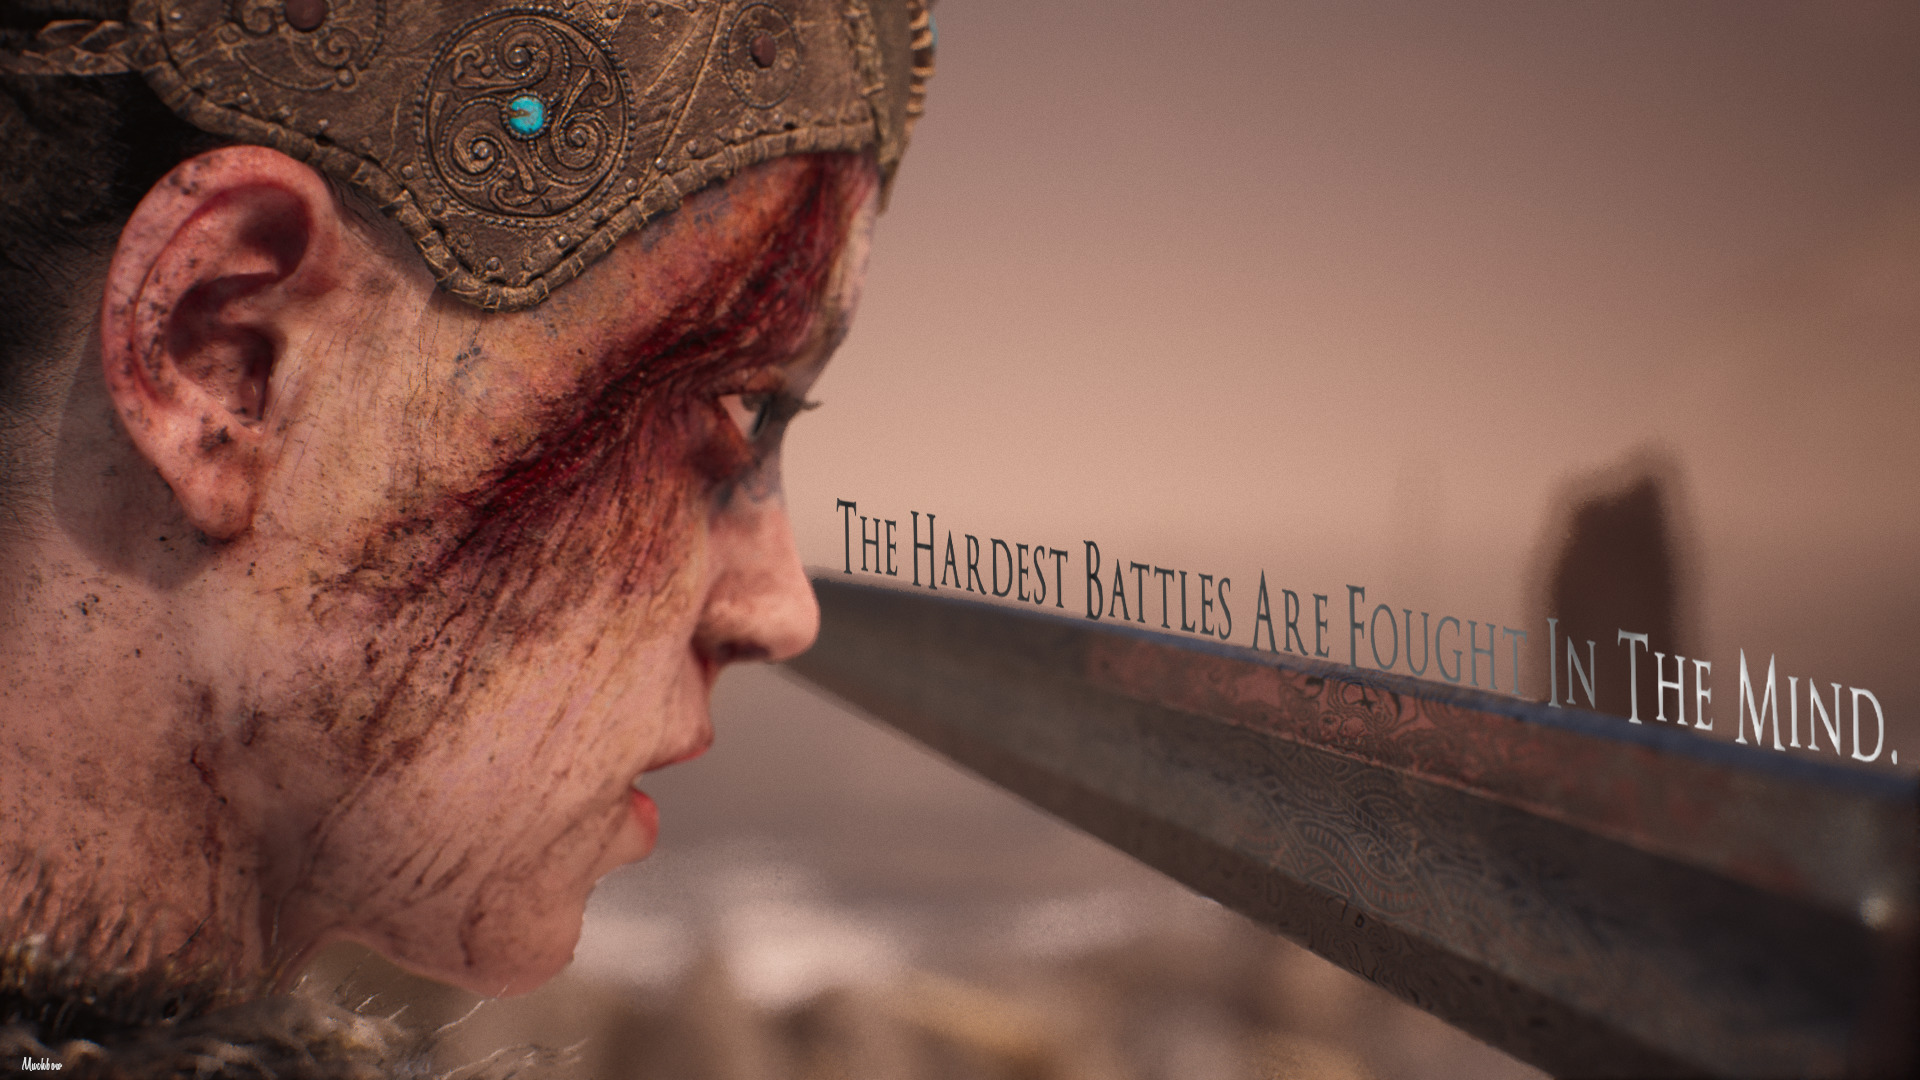 """The hardest battles are fought in the mind."" – Hellblade: Senua's Sacrifice [1920×1080] [OC]"